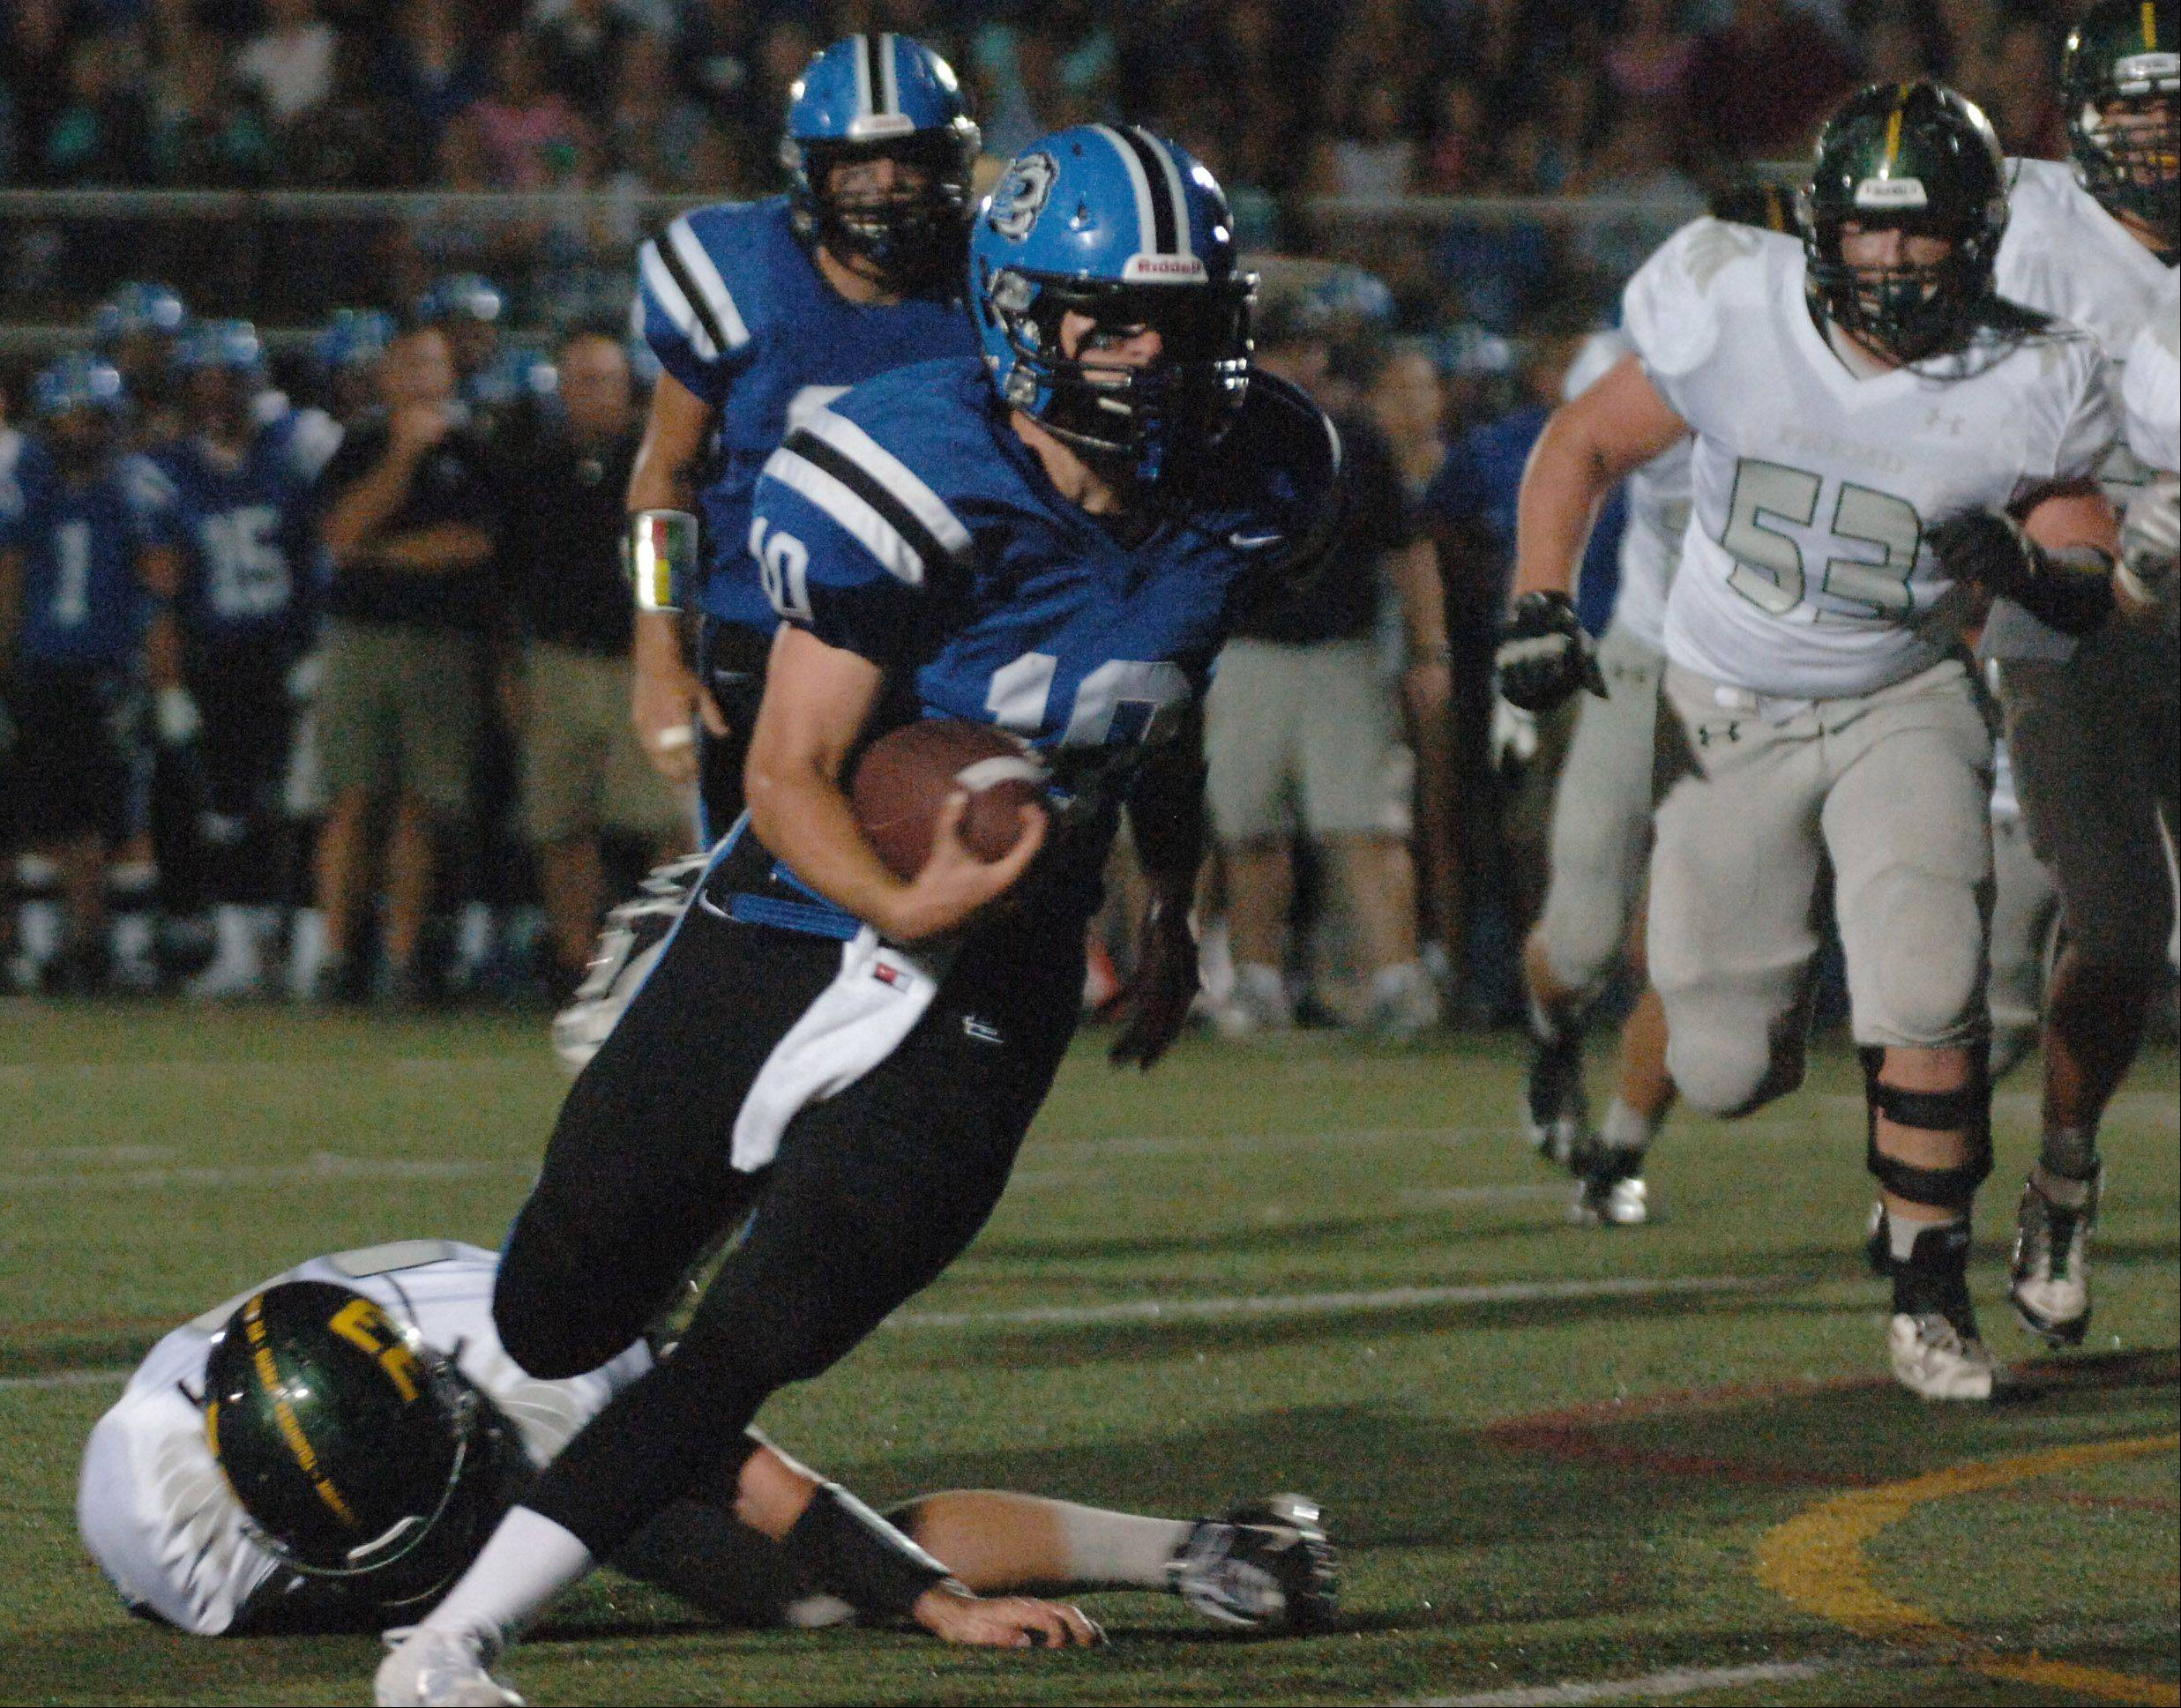 Lake Zurich quarterback Jake Stauner heads into the end zone for a touchdown .